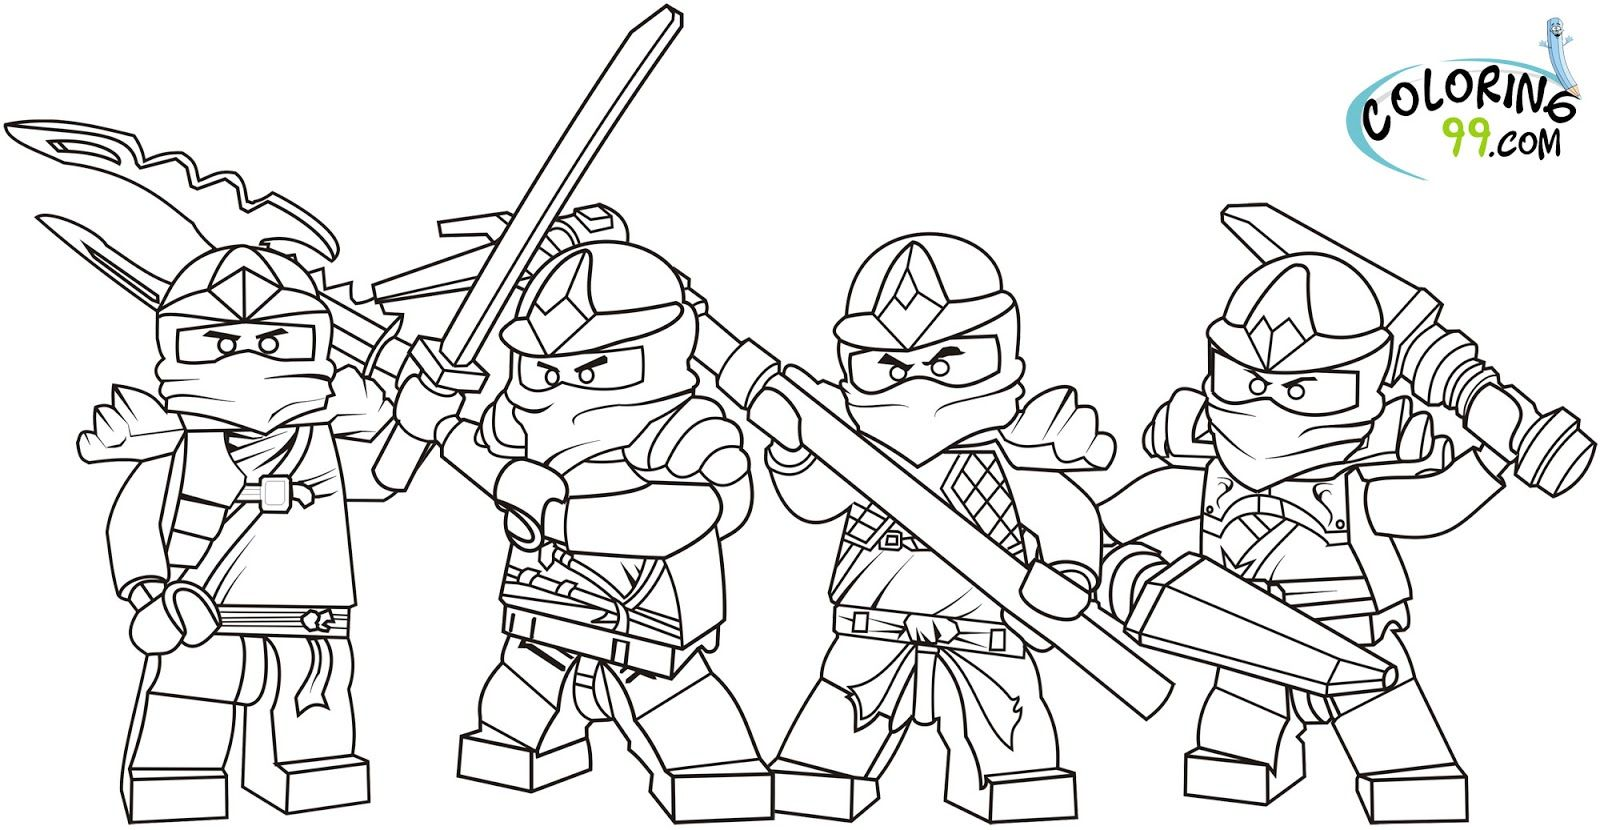 Pin By Gina Anderson On Recipes To Try Ninjago Coloring Pages Lego Coloring Pages Lego Coloring